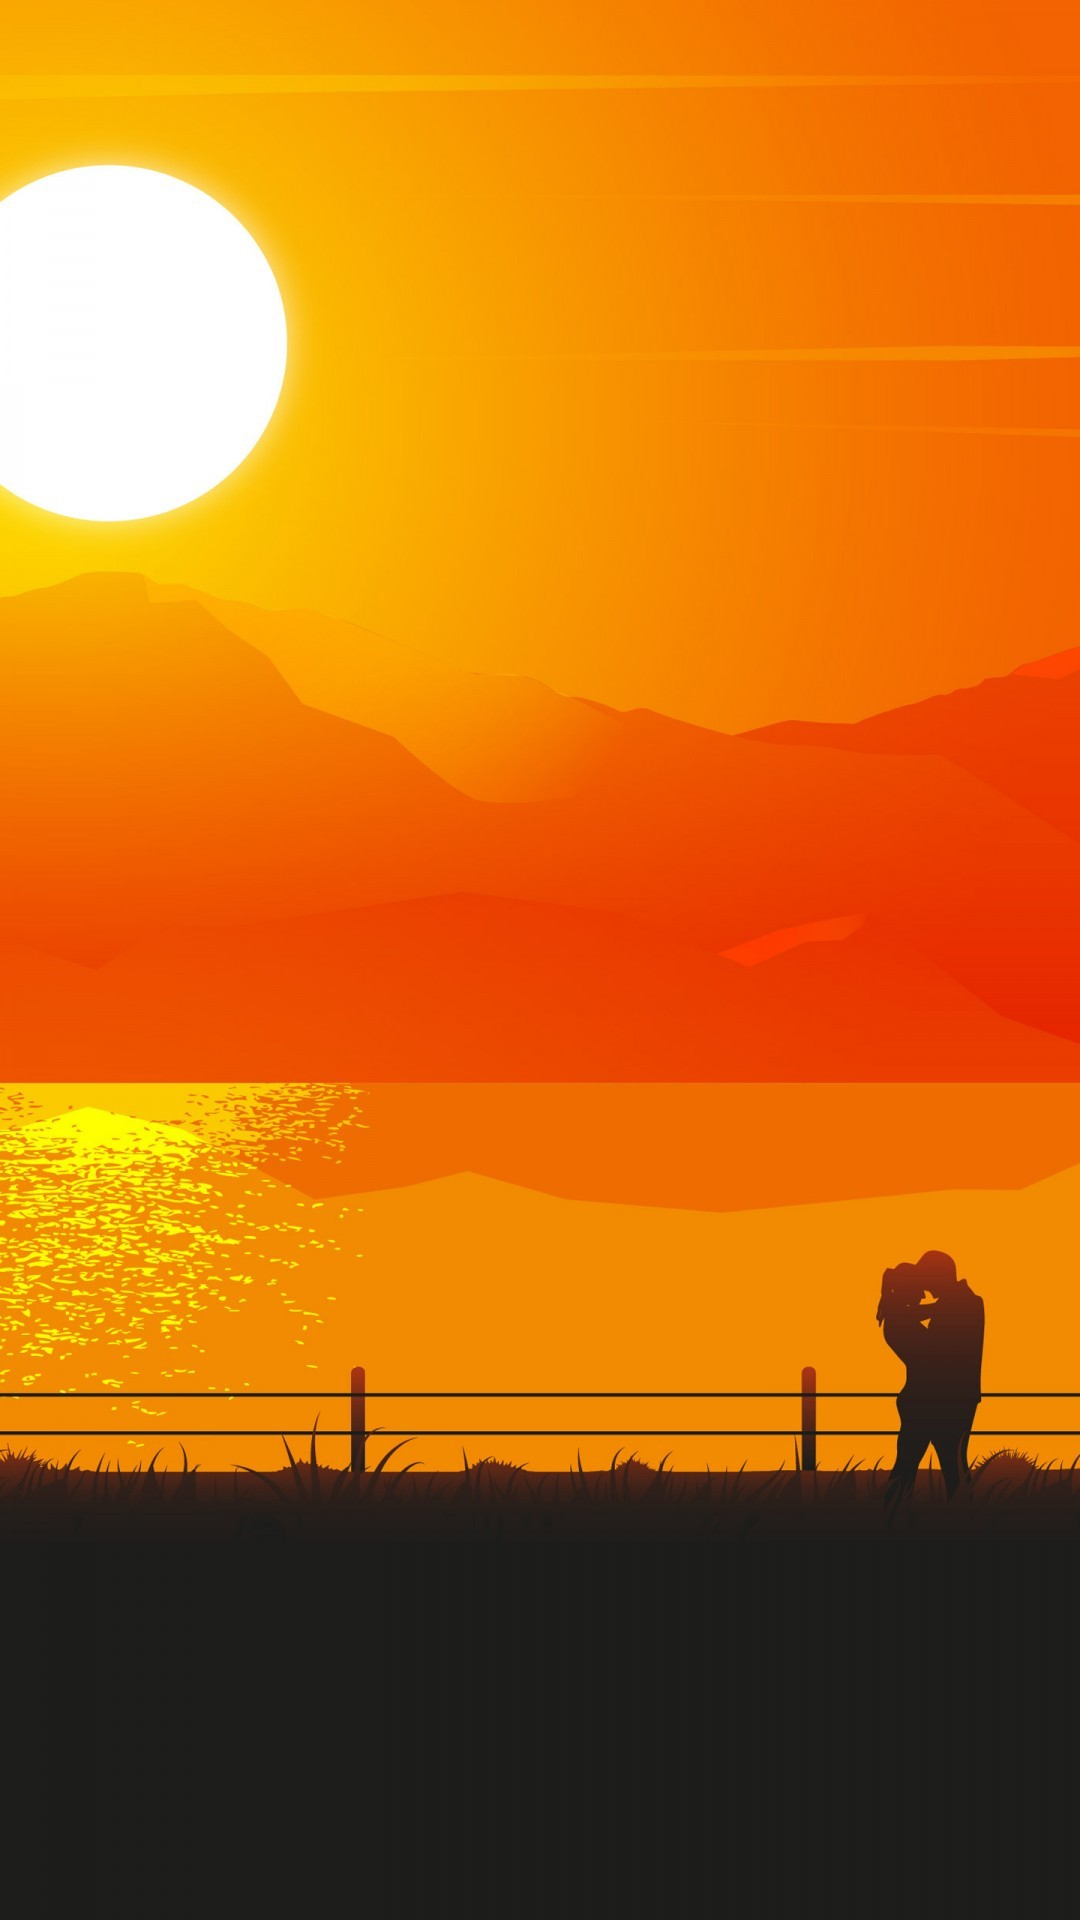 Free Romantic Couple Sunset Silhouette phone wallpaper by shadow87